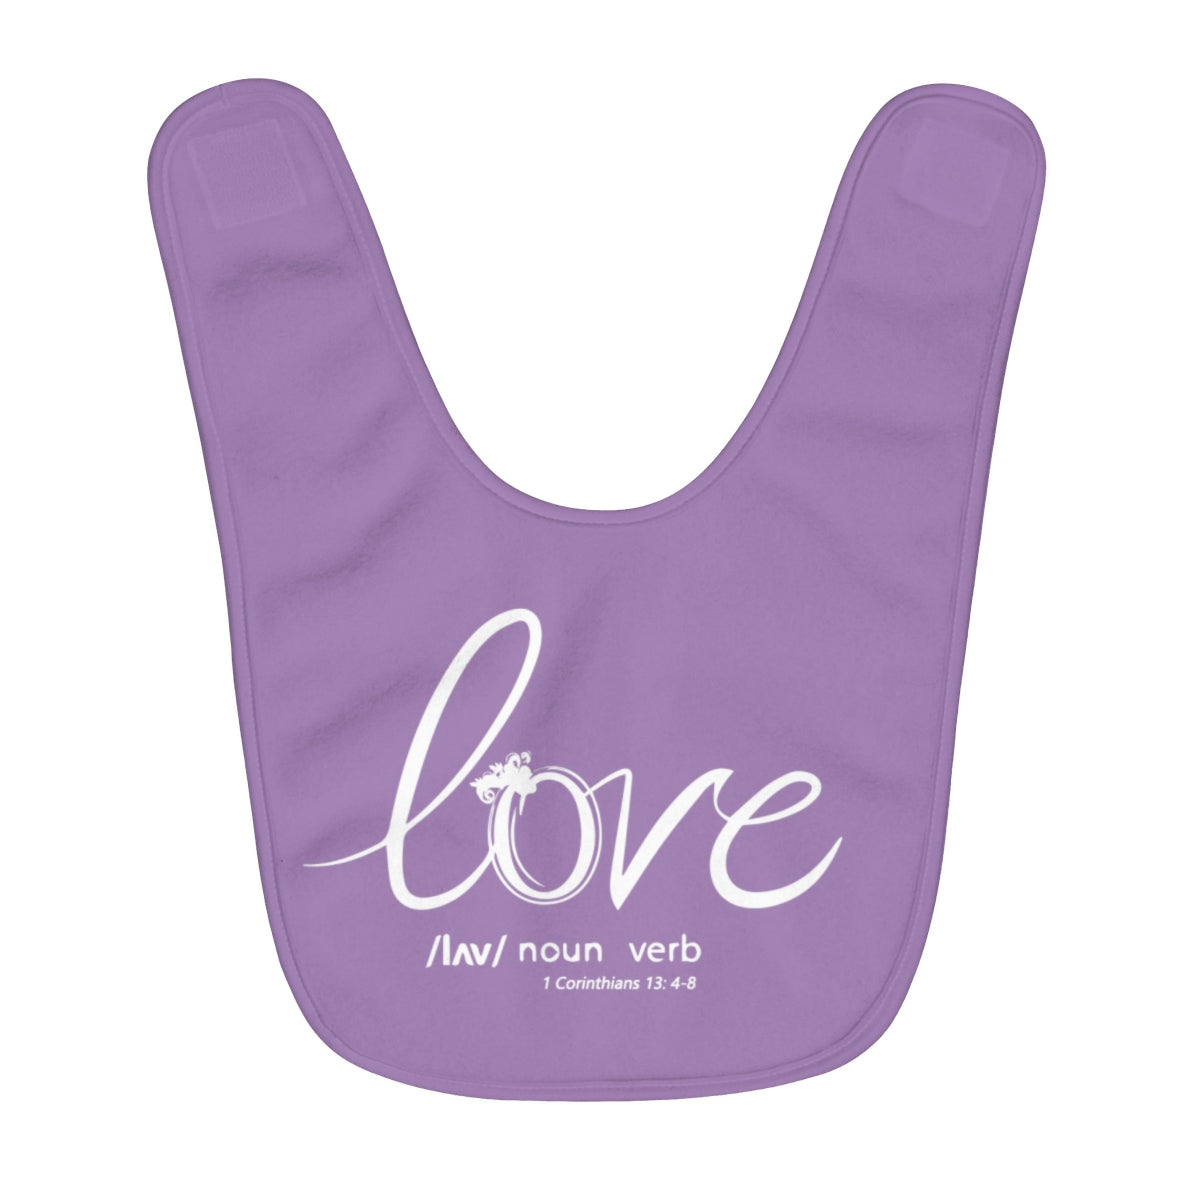 Odyssey Love Fleece Baby Bib - Purple - Kids clothes - Odyssey By Yendi